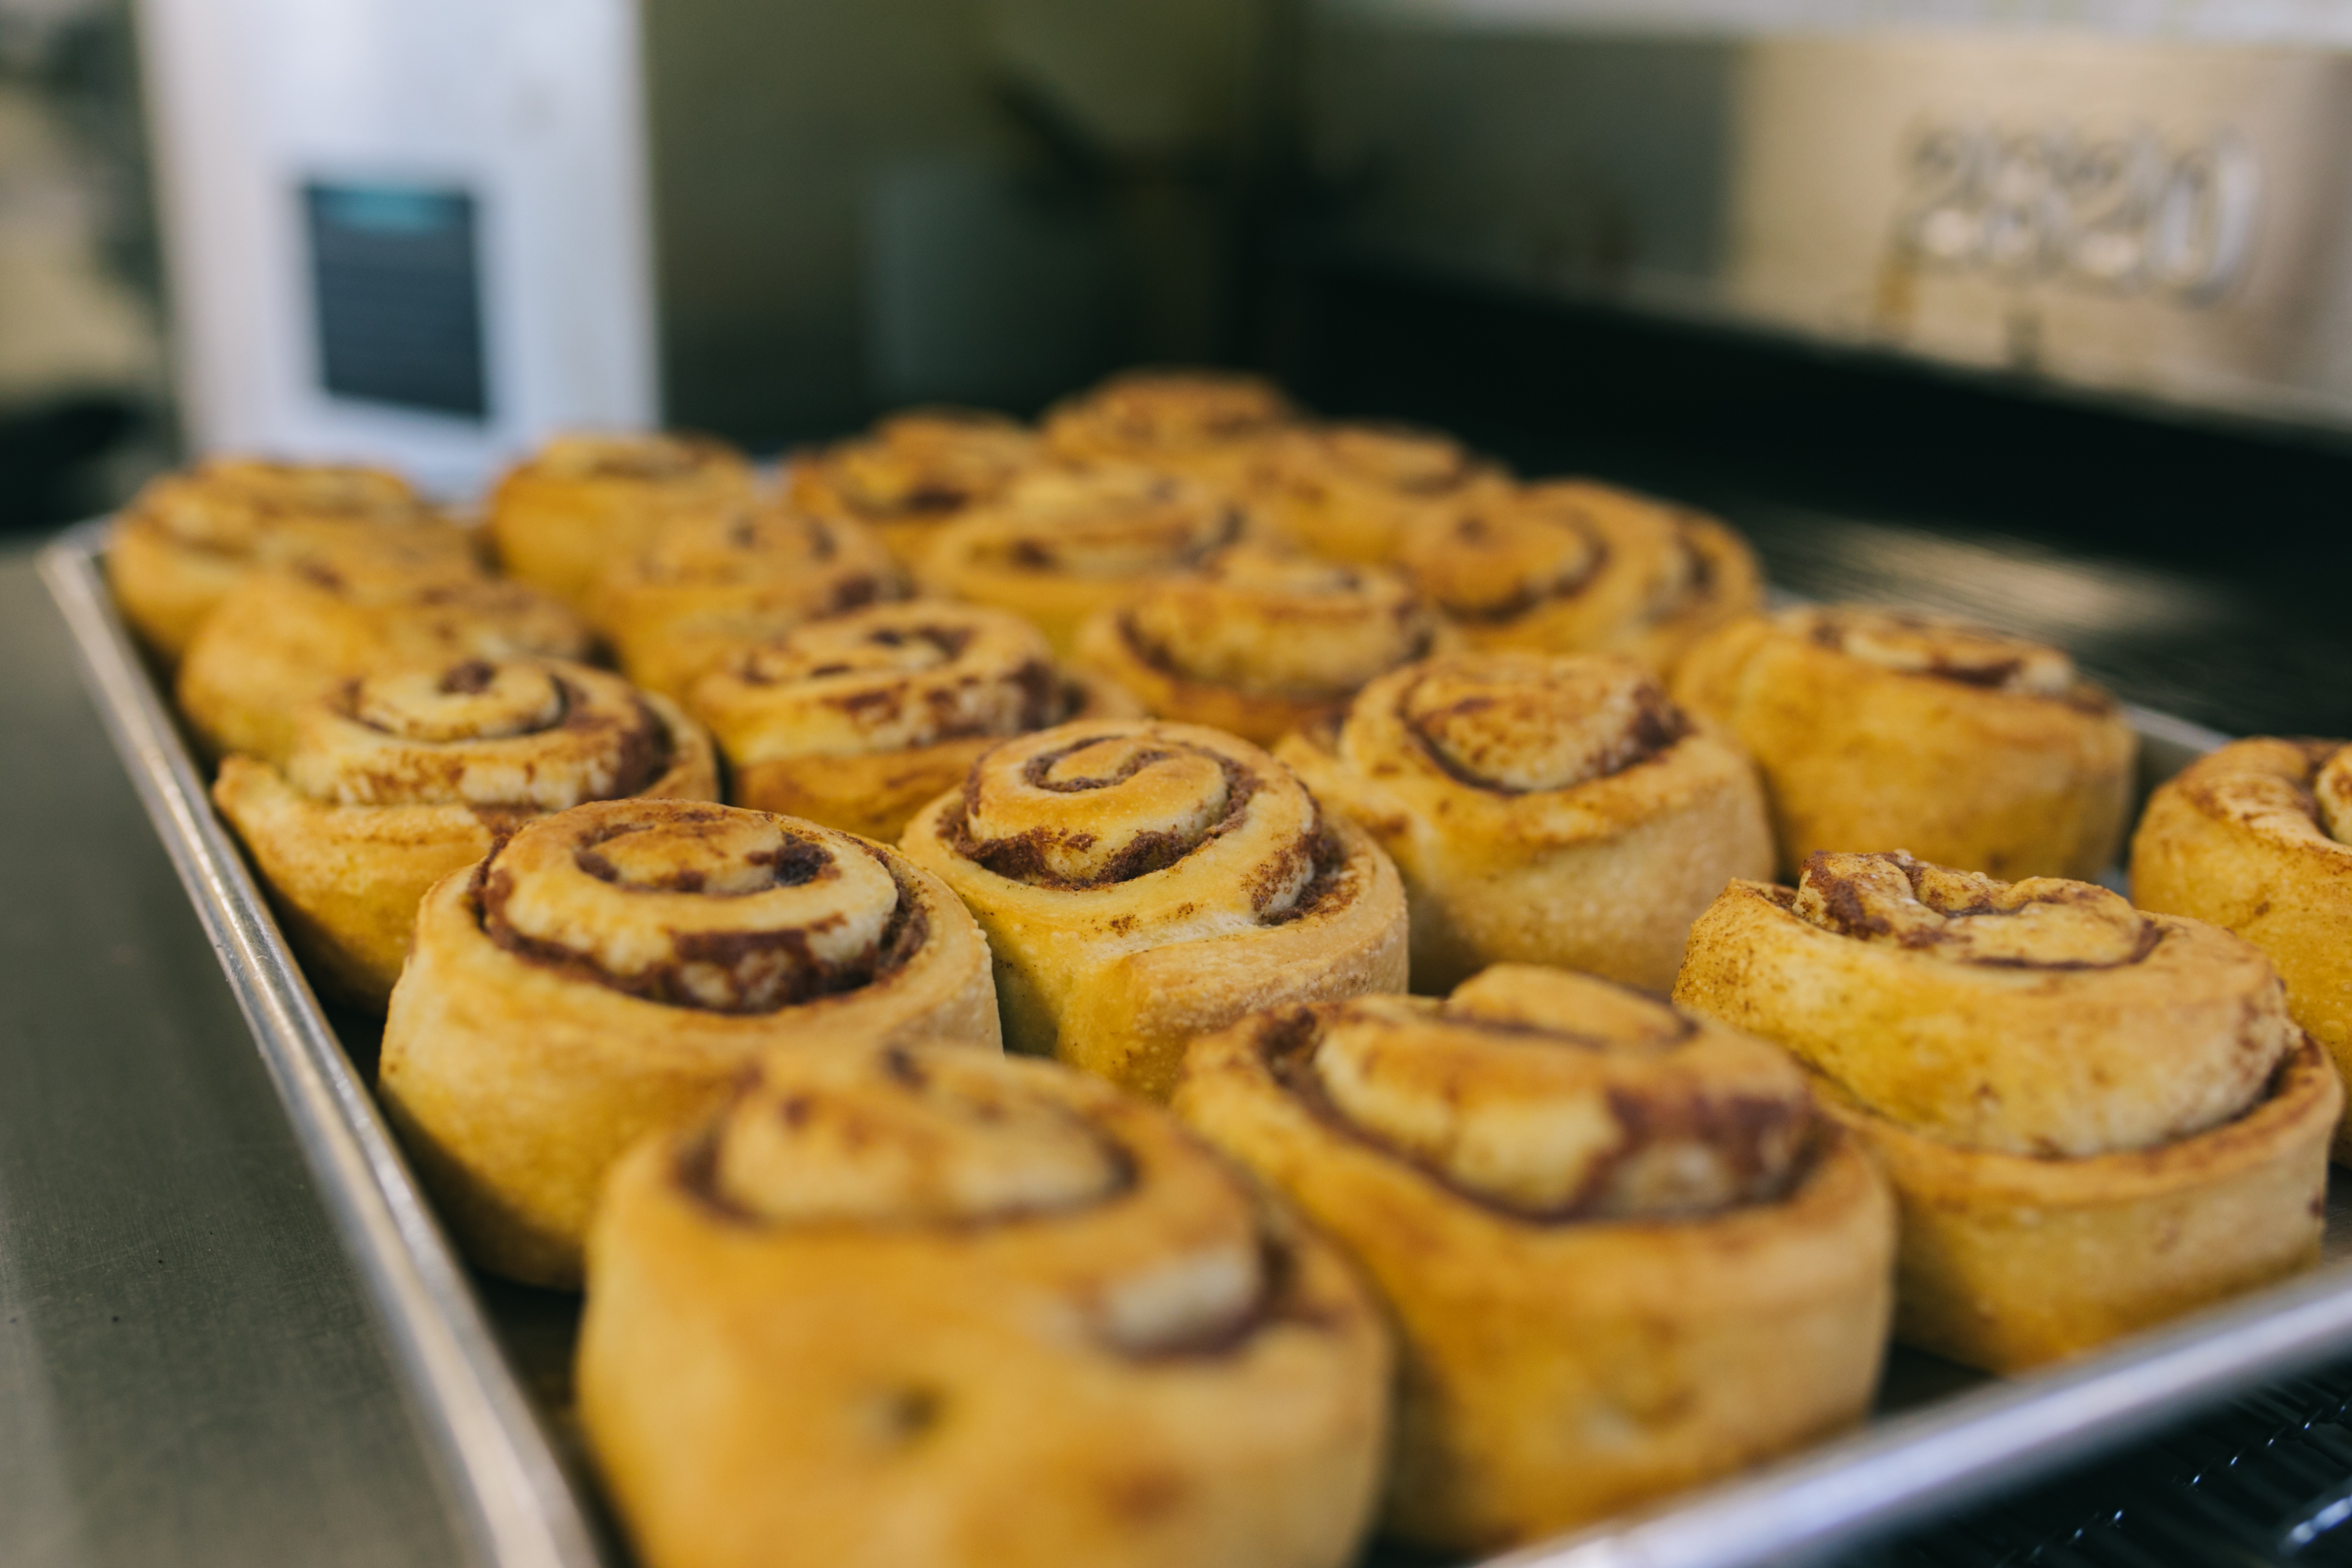 pre decorated cinnamon rolls on a tray